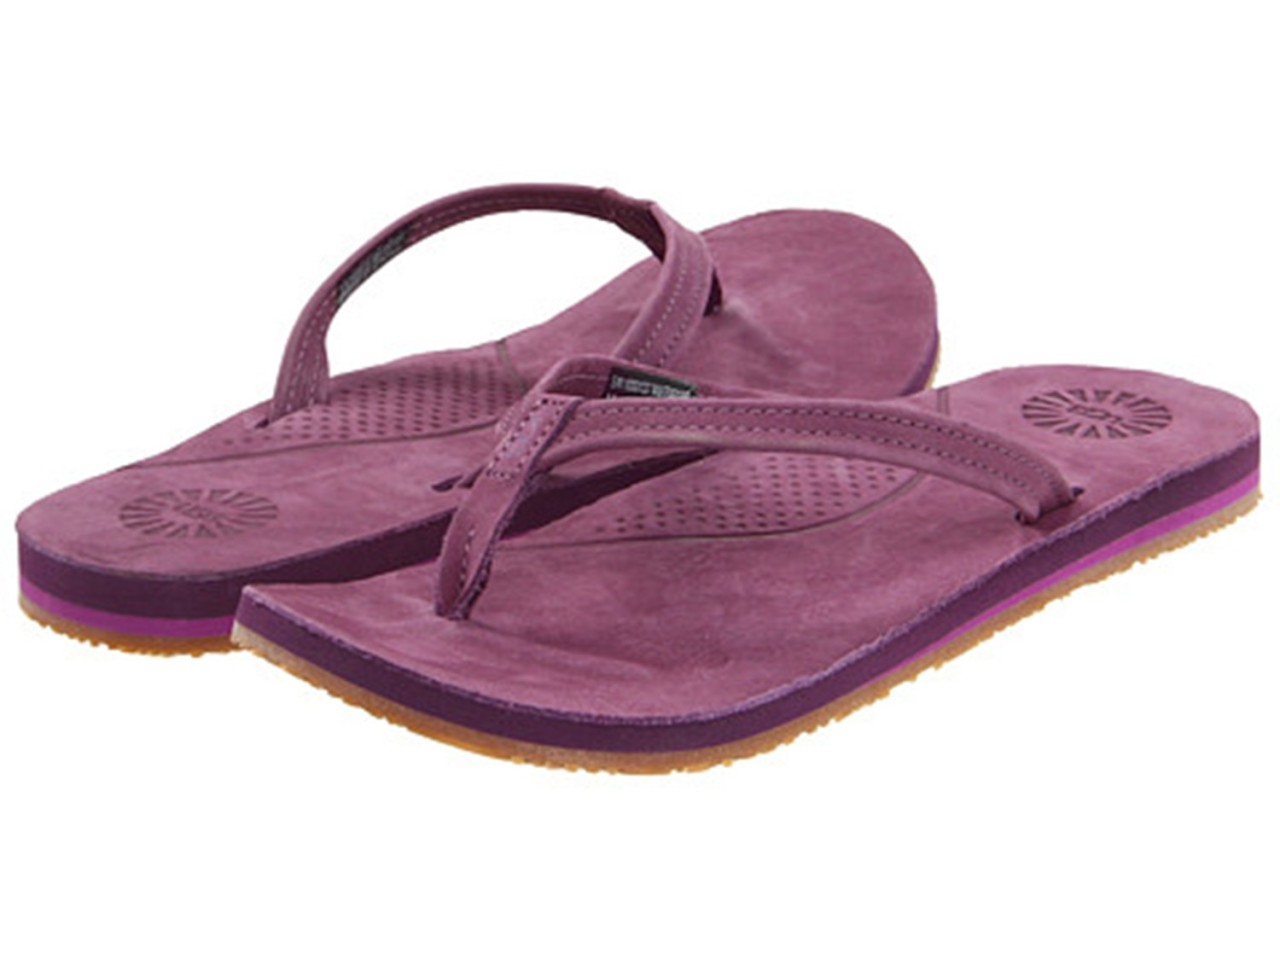 women 39 s shoes ugg australia kayla flip flop sandals leather boysenberry purple. Black Bedroom Furniture Sets. Home Design Ideas